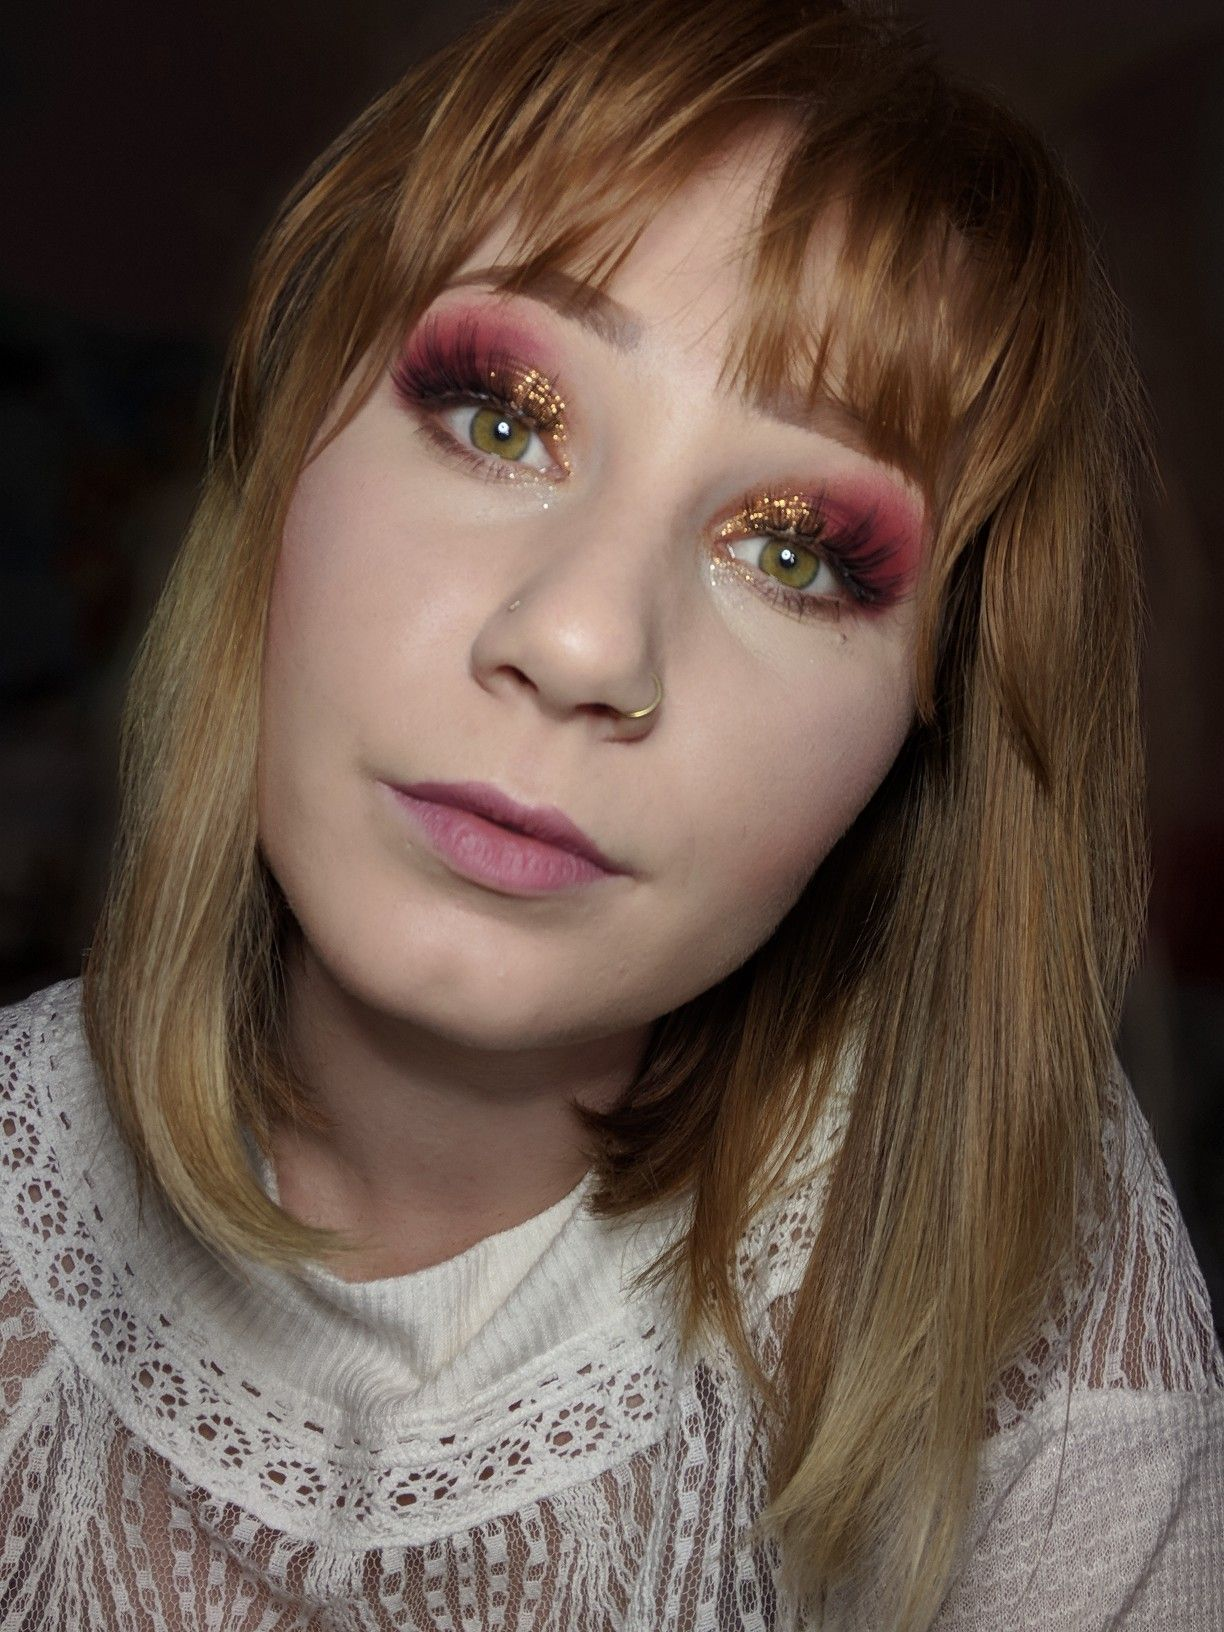 Limelife Makeup and Alternative Cosmetics Glitter Palette